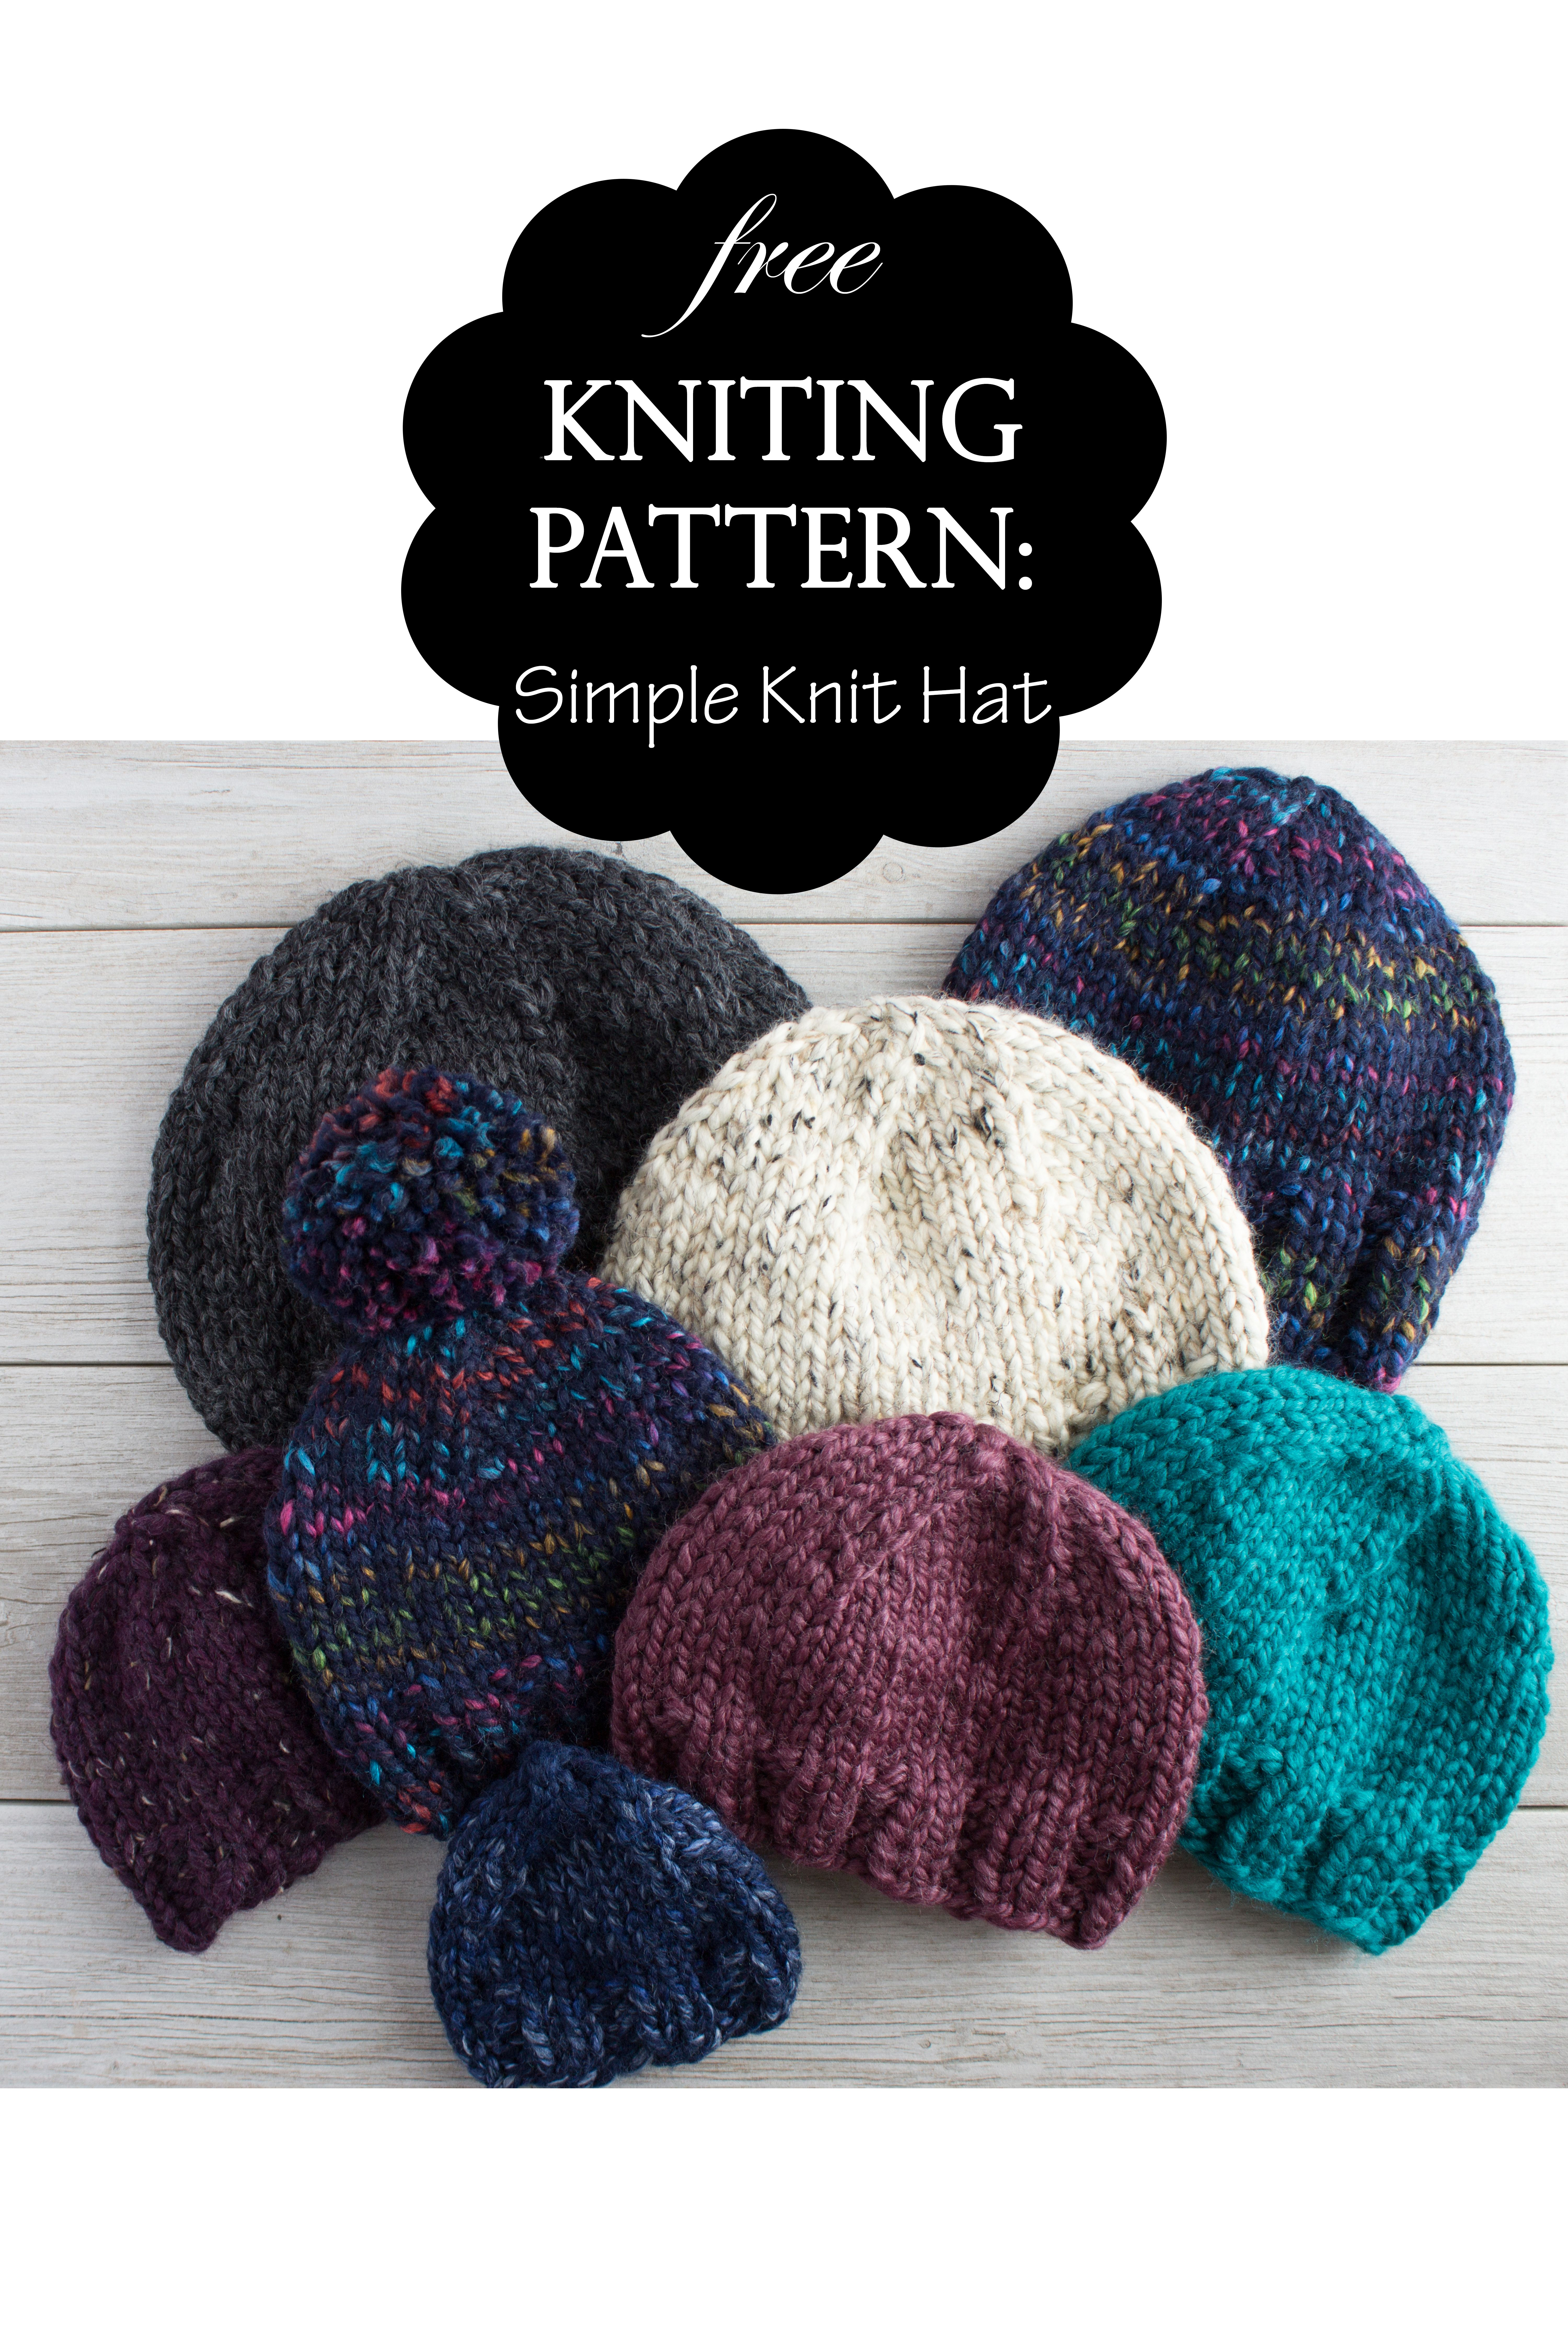 My Favorite Simple Knit Hat pattern by Snickerdoodle Knits ...